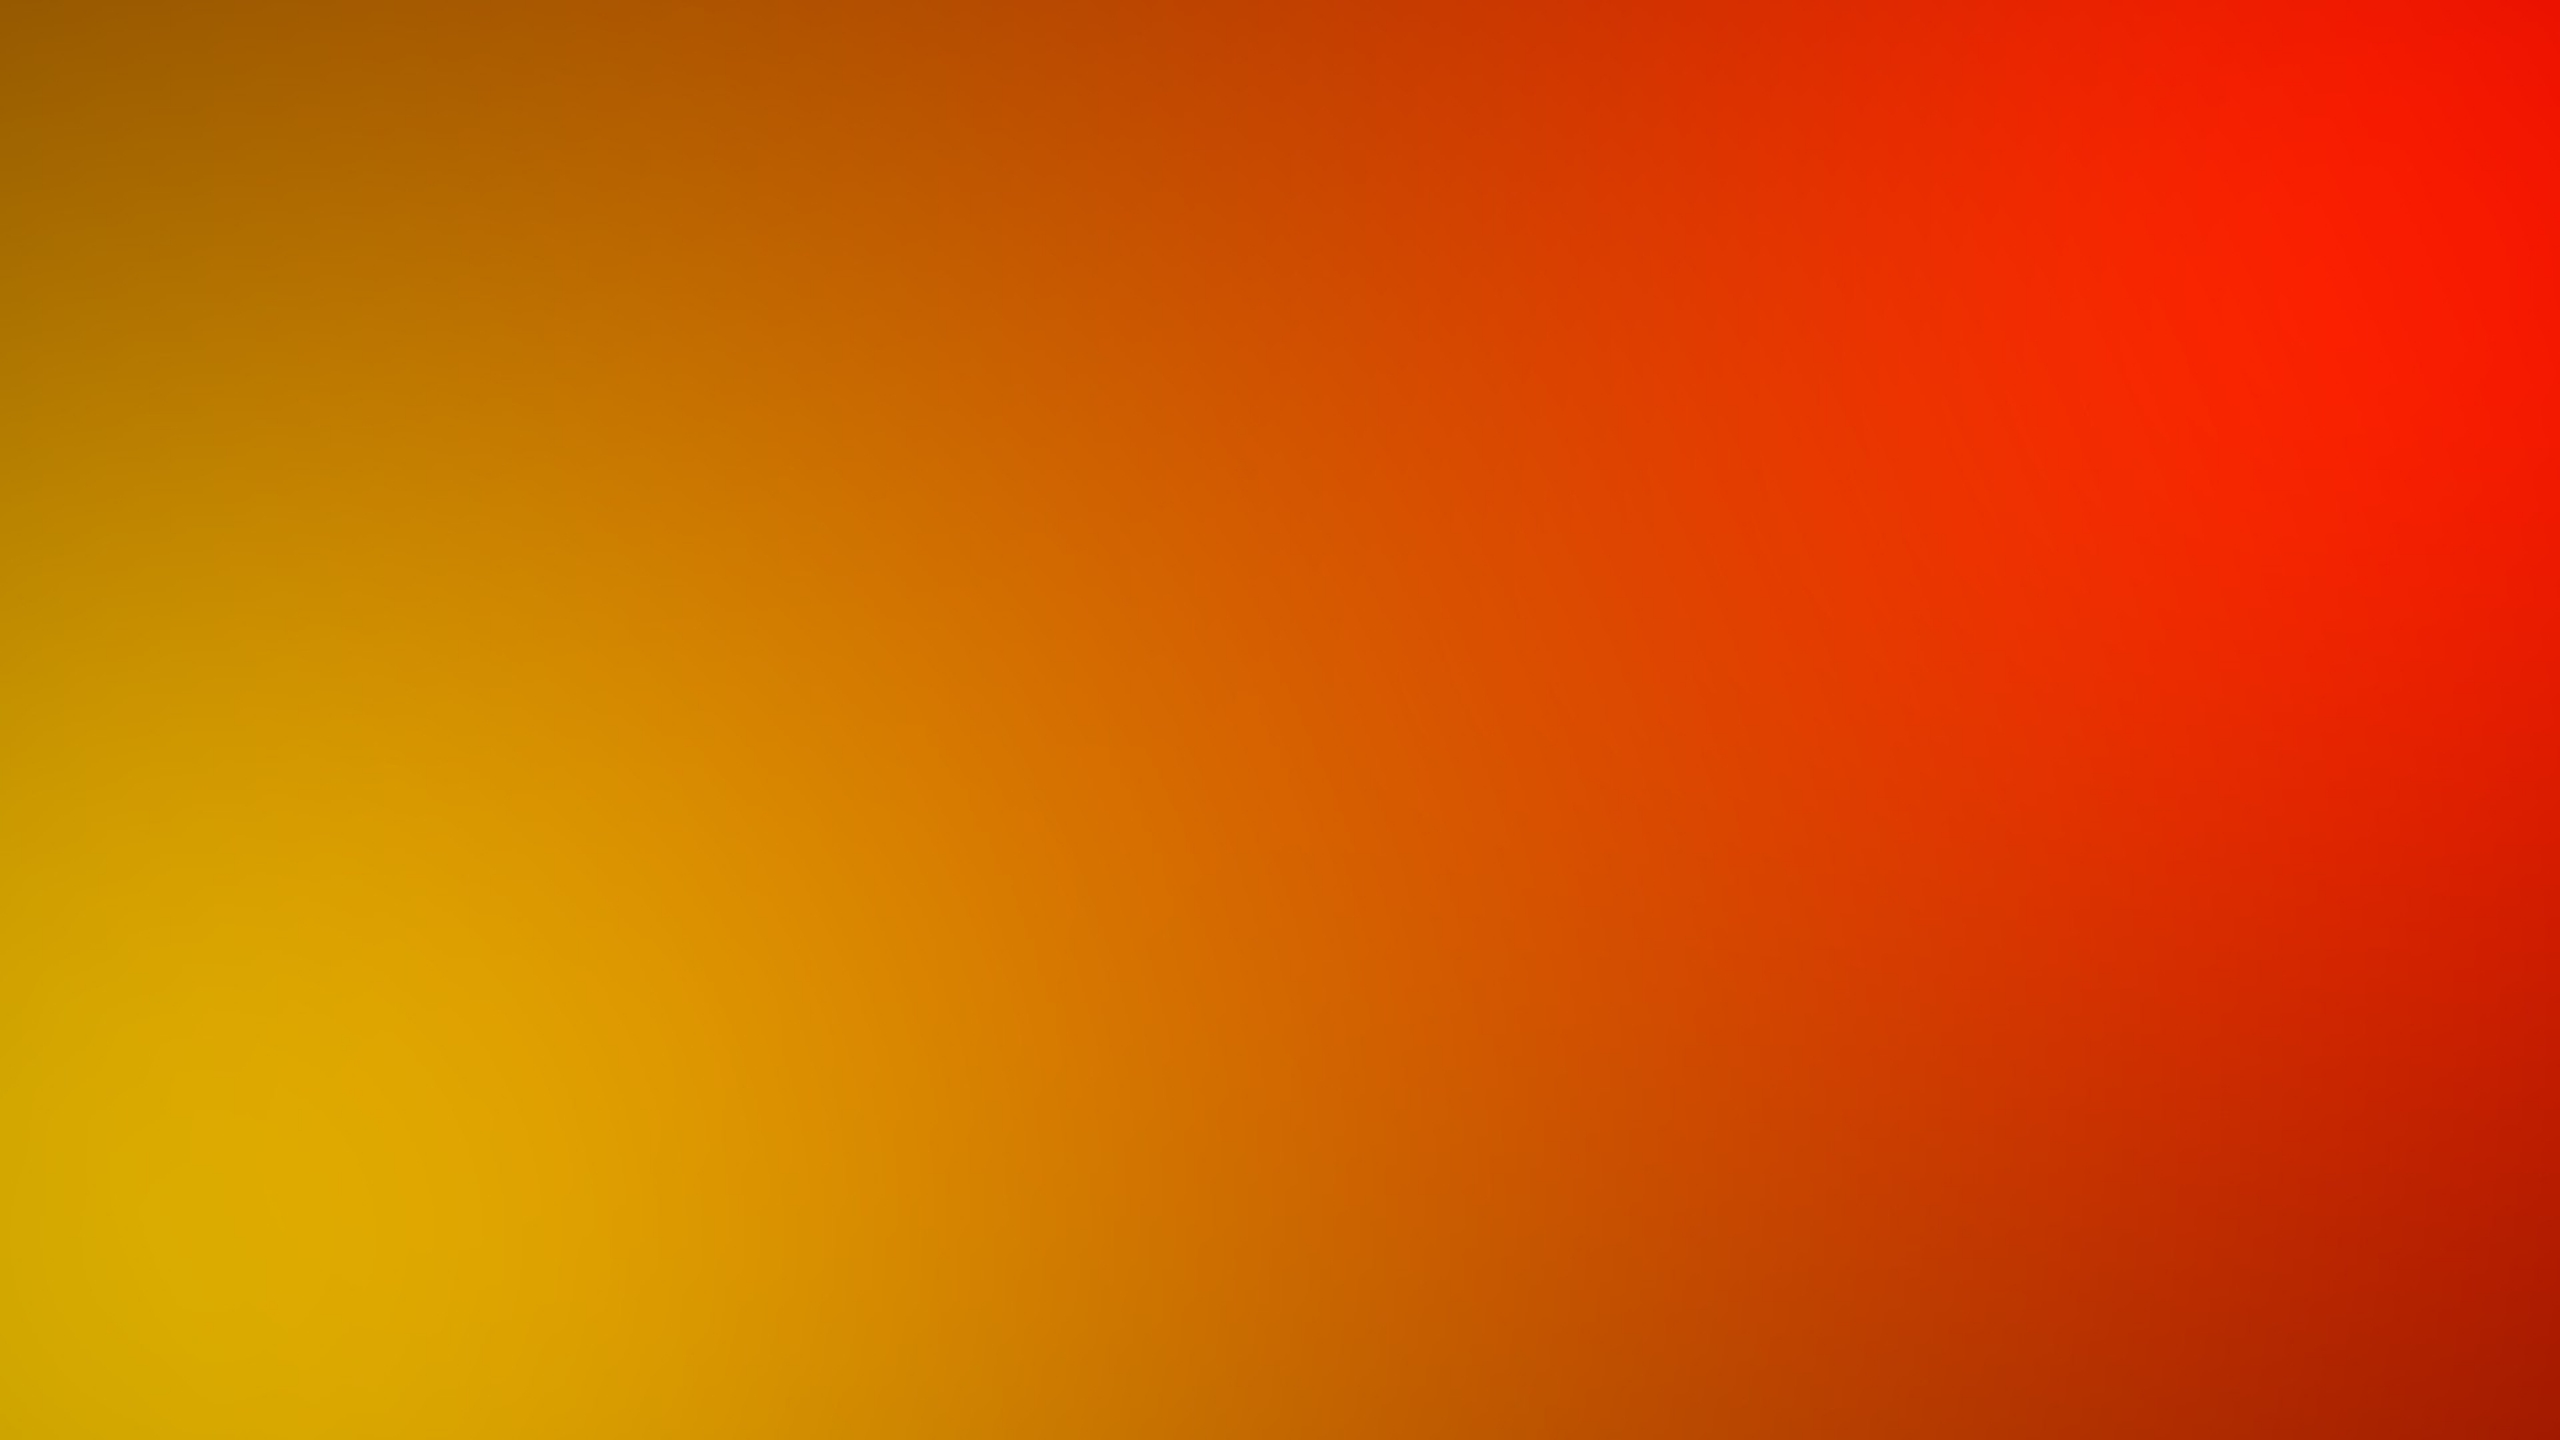 Download Orange Colour HD Wallpapers Gallery